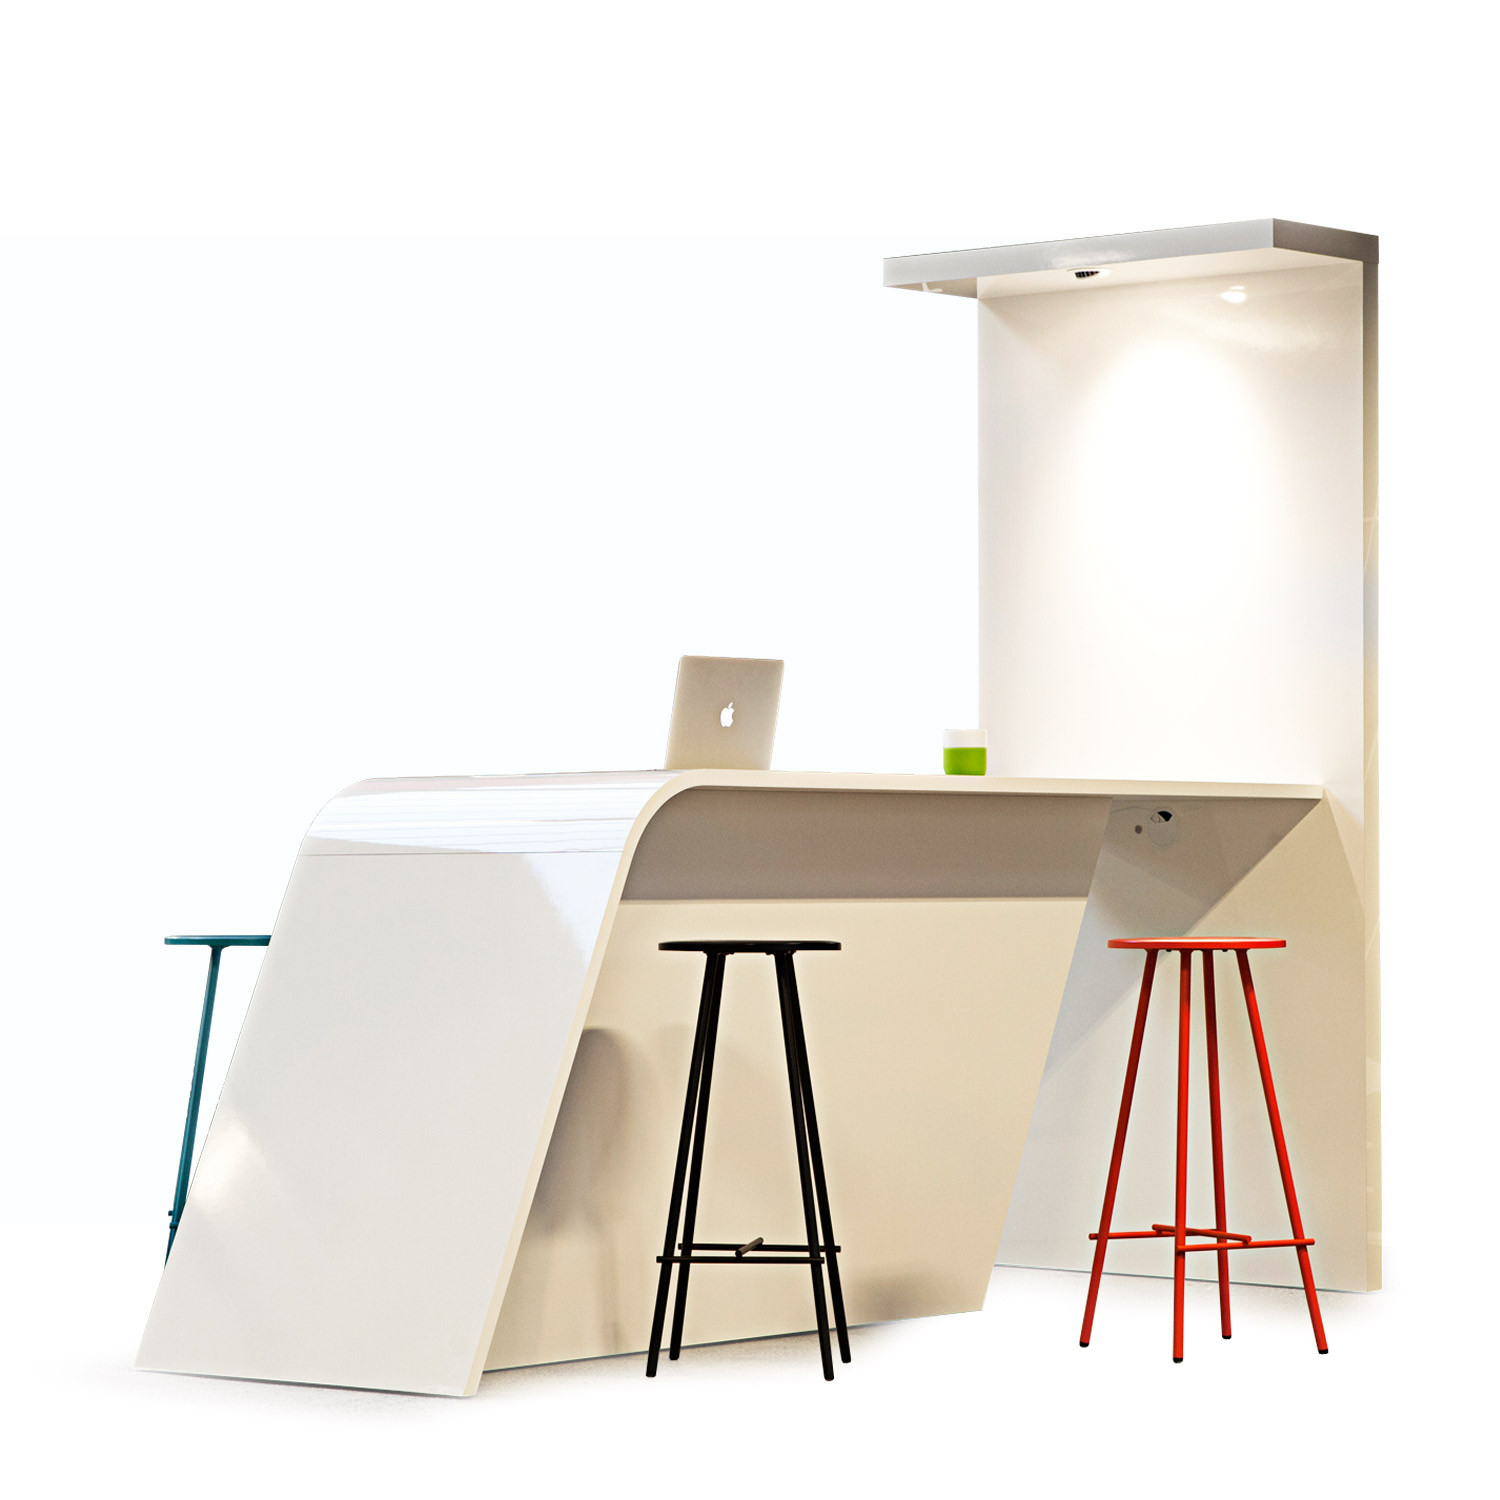 Wing High Table with whiteboard surface